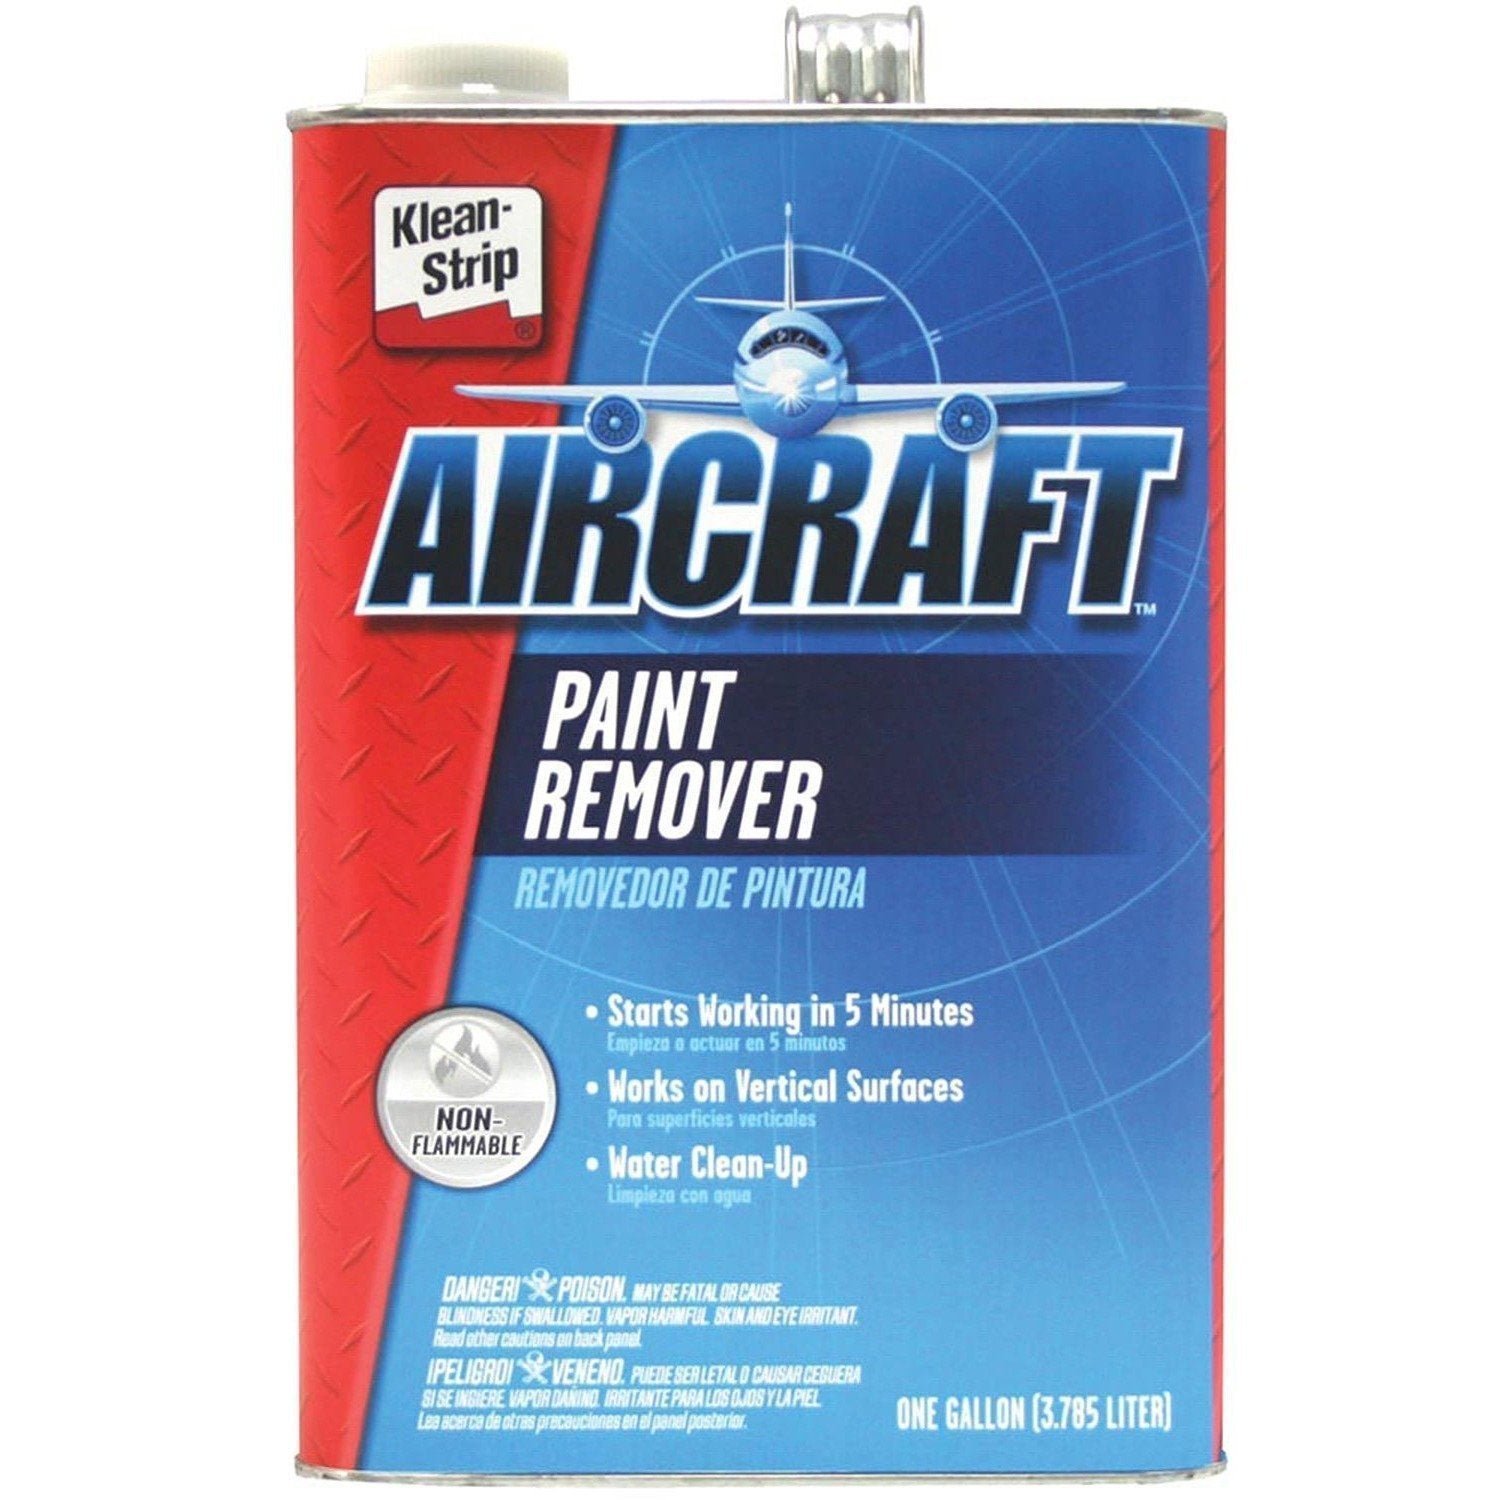 Klean-Strip - Aircraft Paint Remover